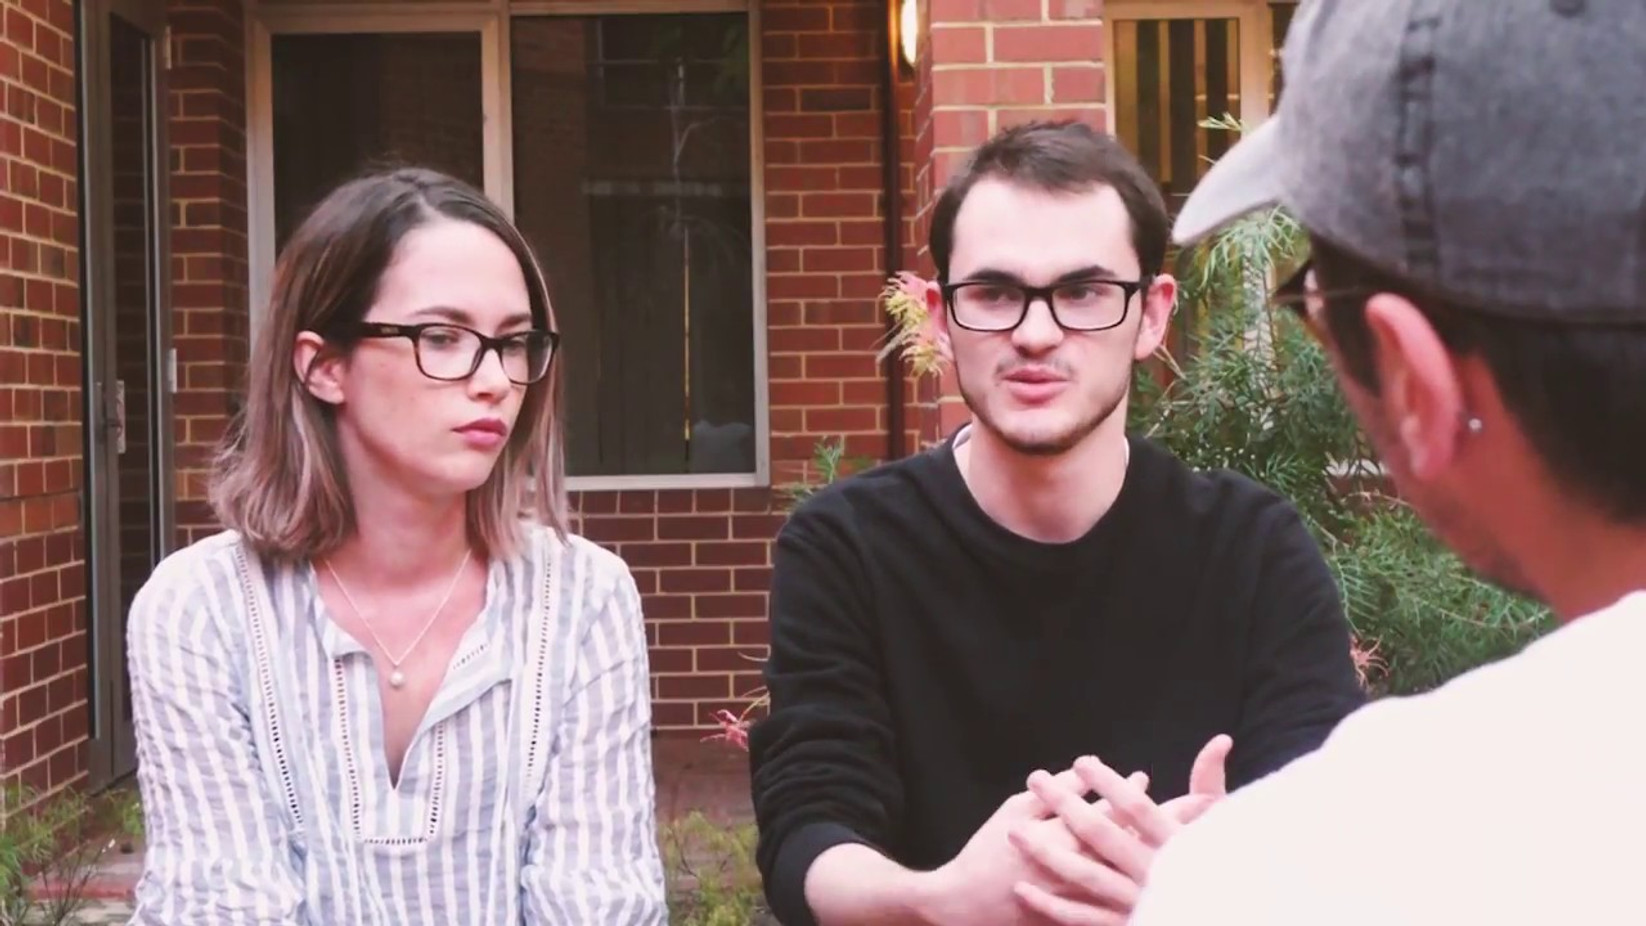 INTERVIEW WITH THE UNI GOONIES